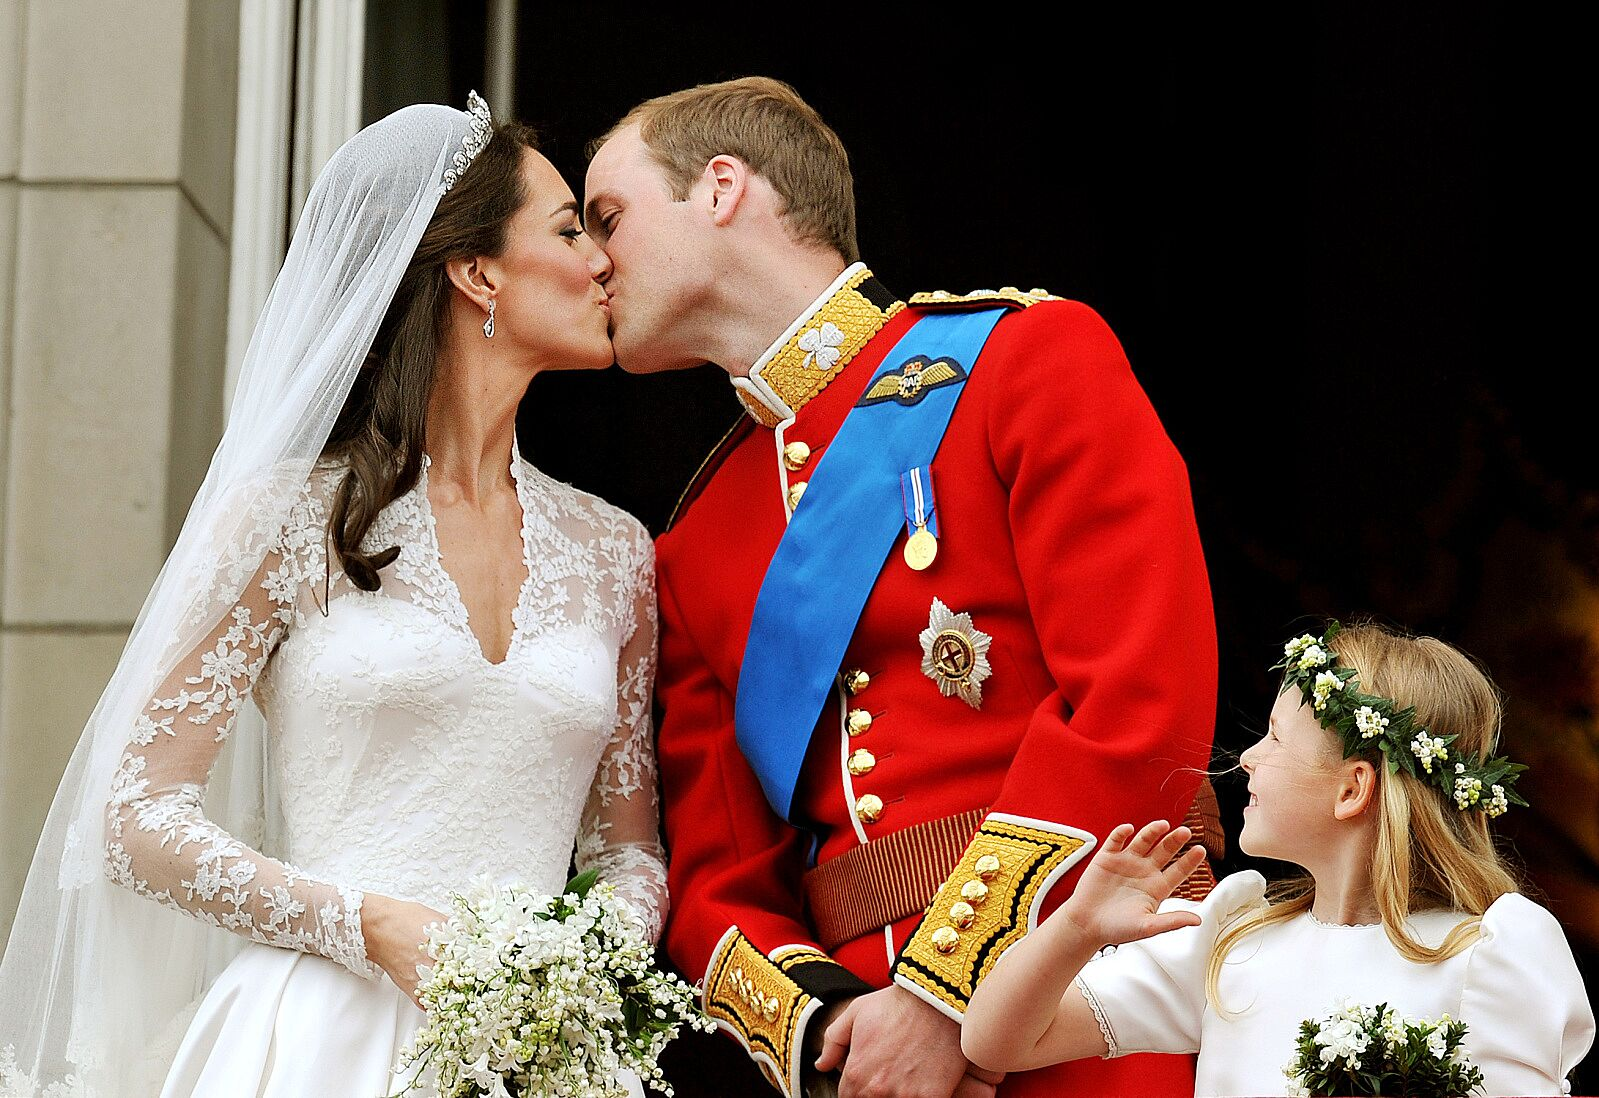 Royal Wedding Kiss.Royal Wedding Will Prince Harry And Meghan Markle Kiss For